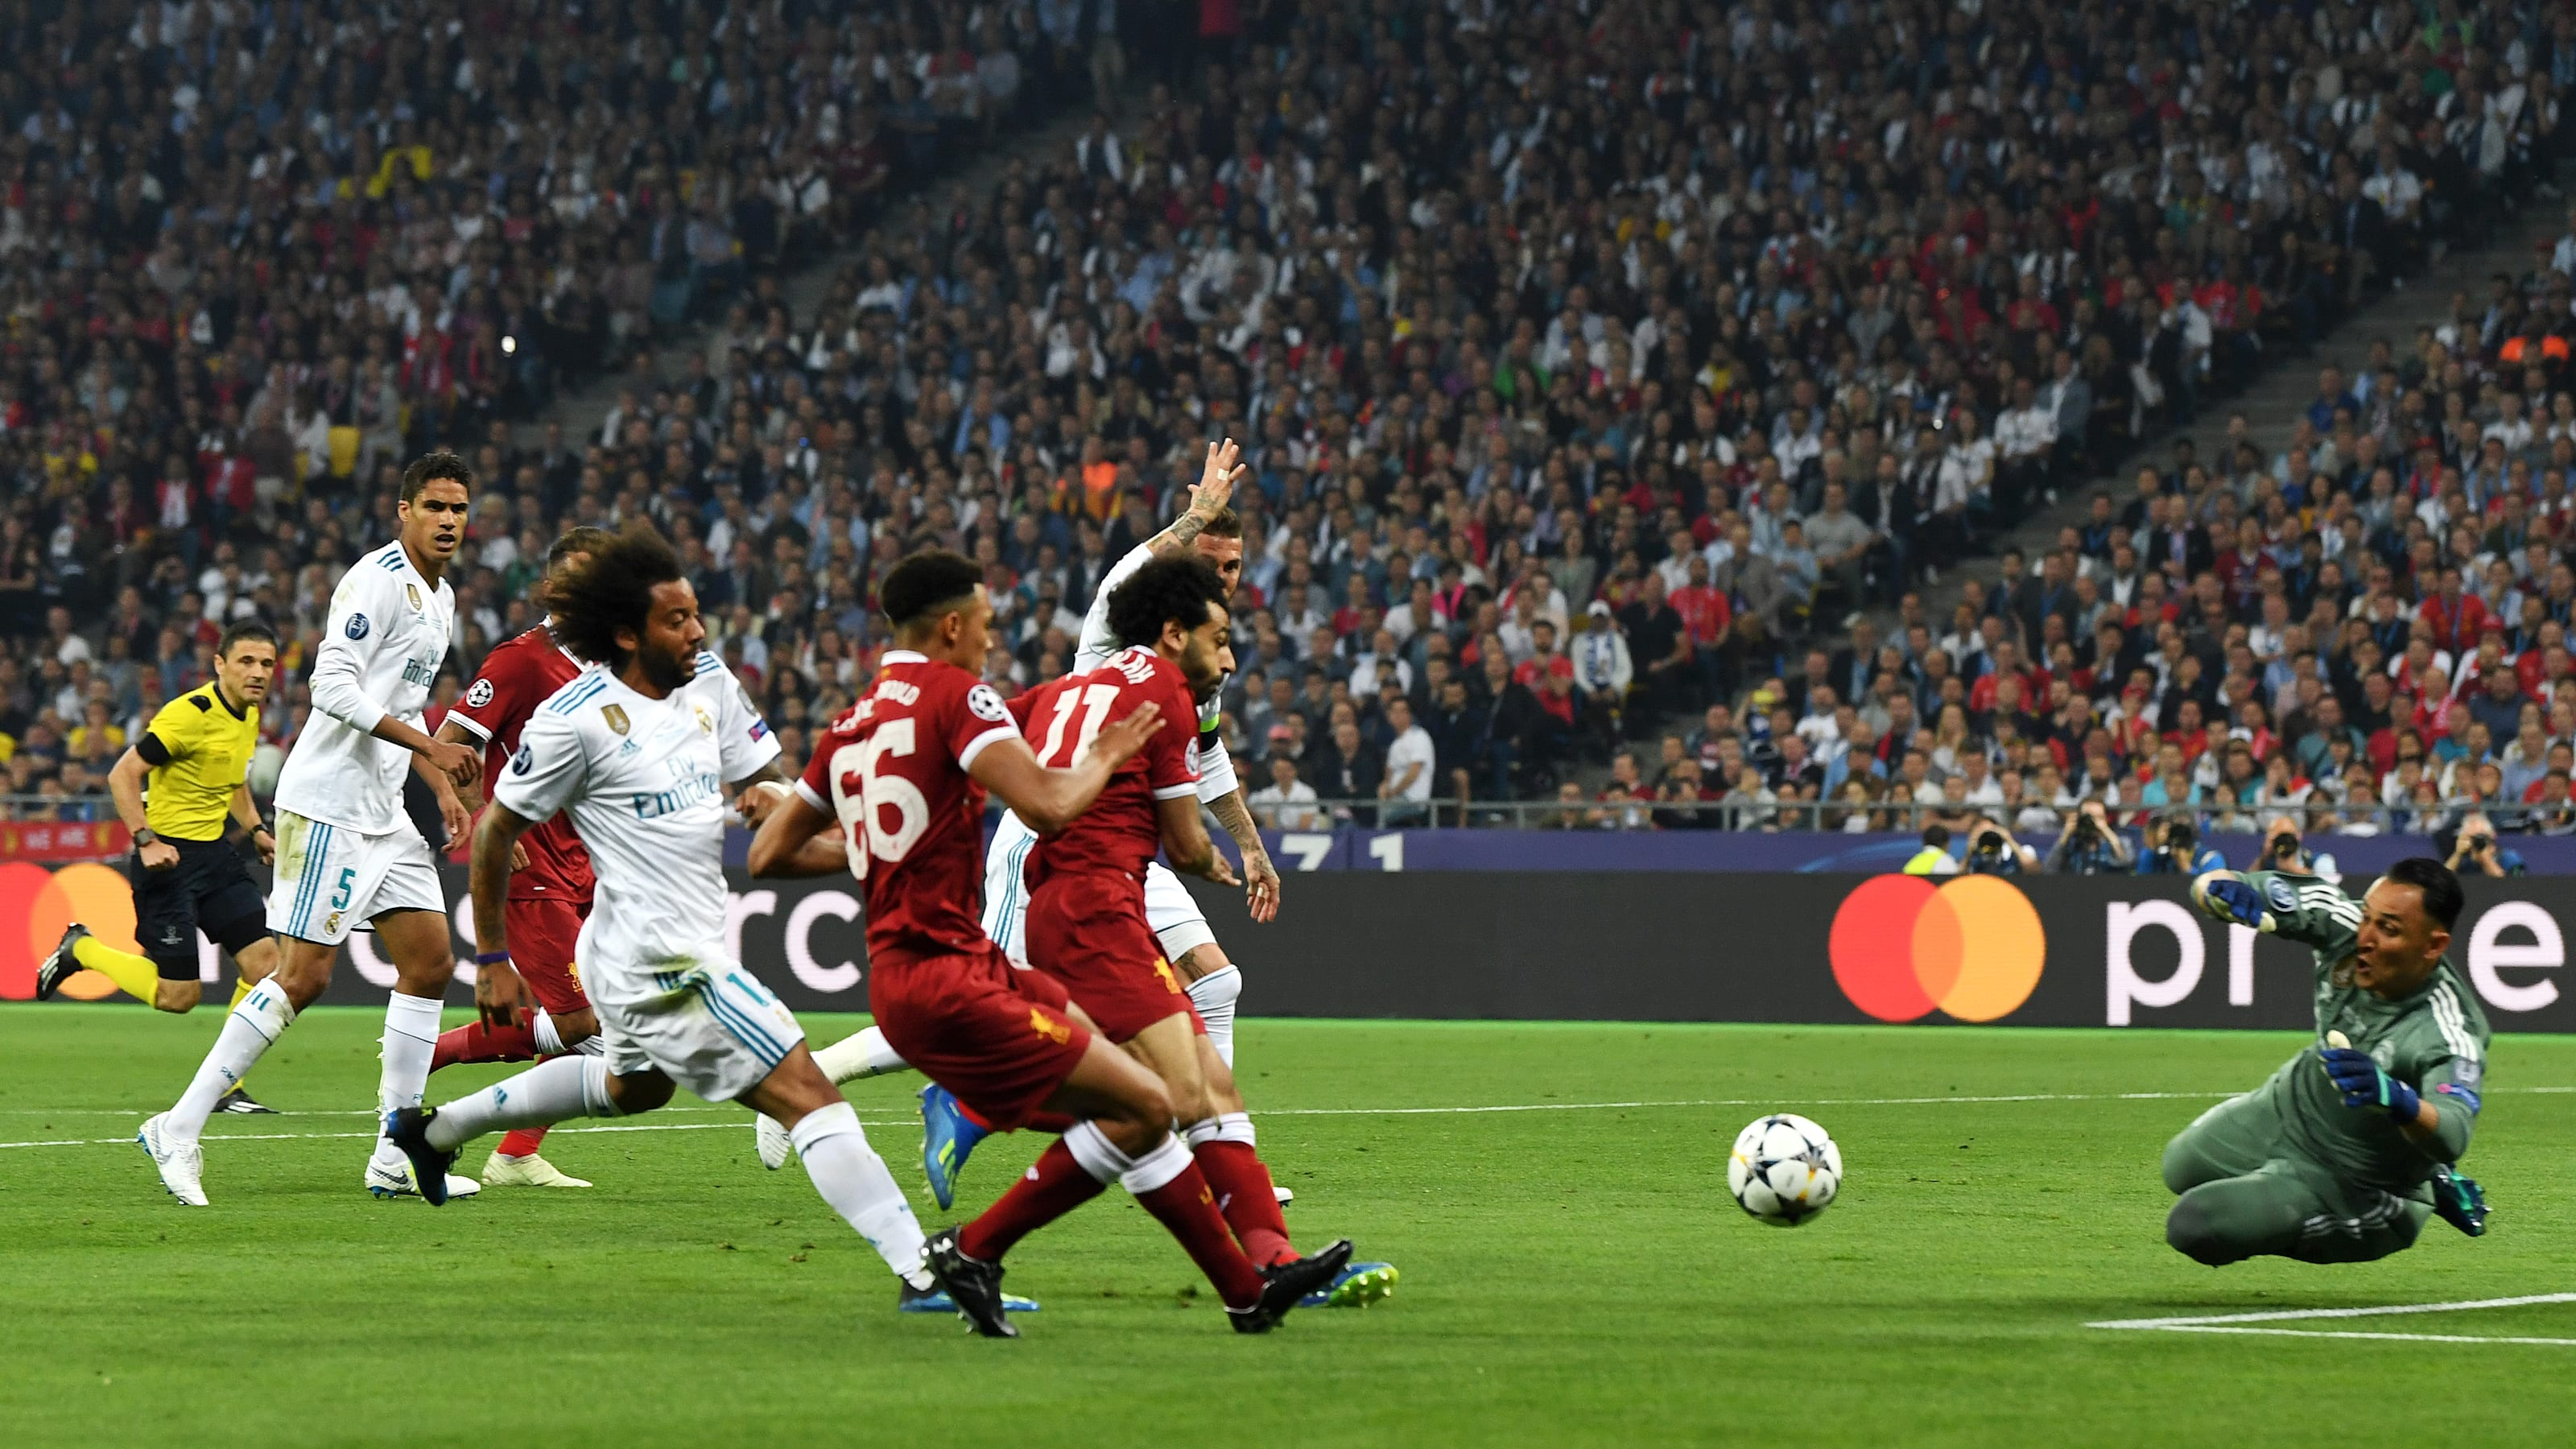 UEFA Champions League 2020-21 quarter-finals leg 1: Real Madrid vs  Liverpool and other fixtures, watch live streaming and telecast in India